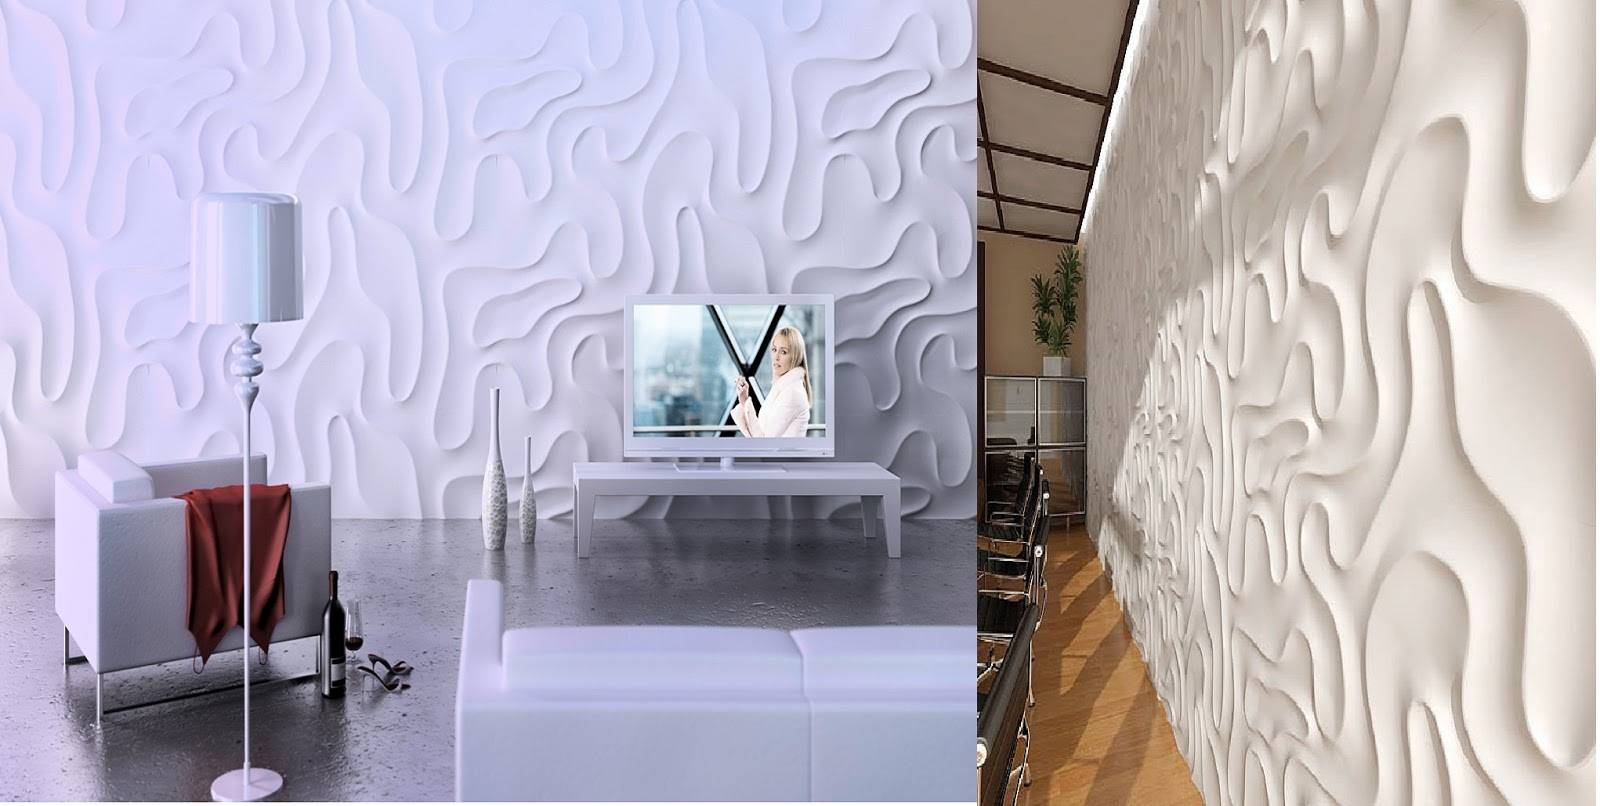 Decorative 3D Wall Panels For Unusual Wall Decor 2017 Intended For Most Popular 3D Wall Panels Wall Art (View 9 of 20)